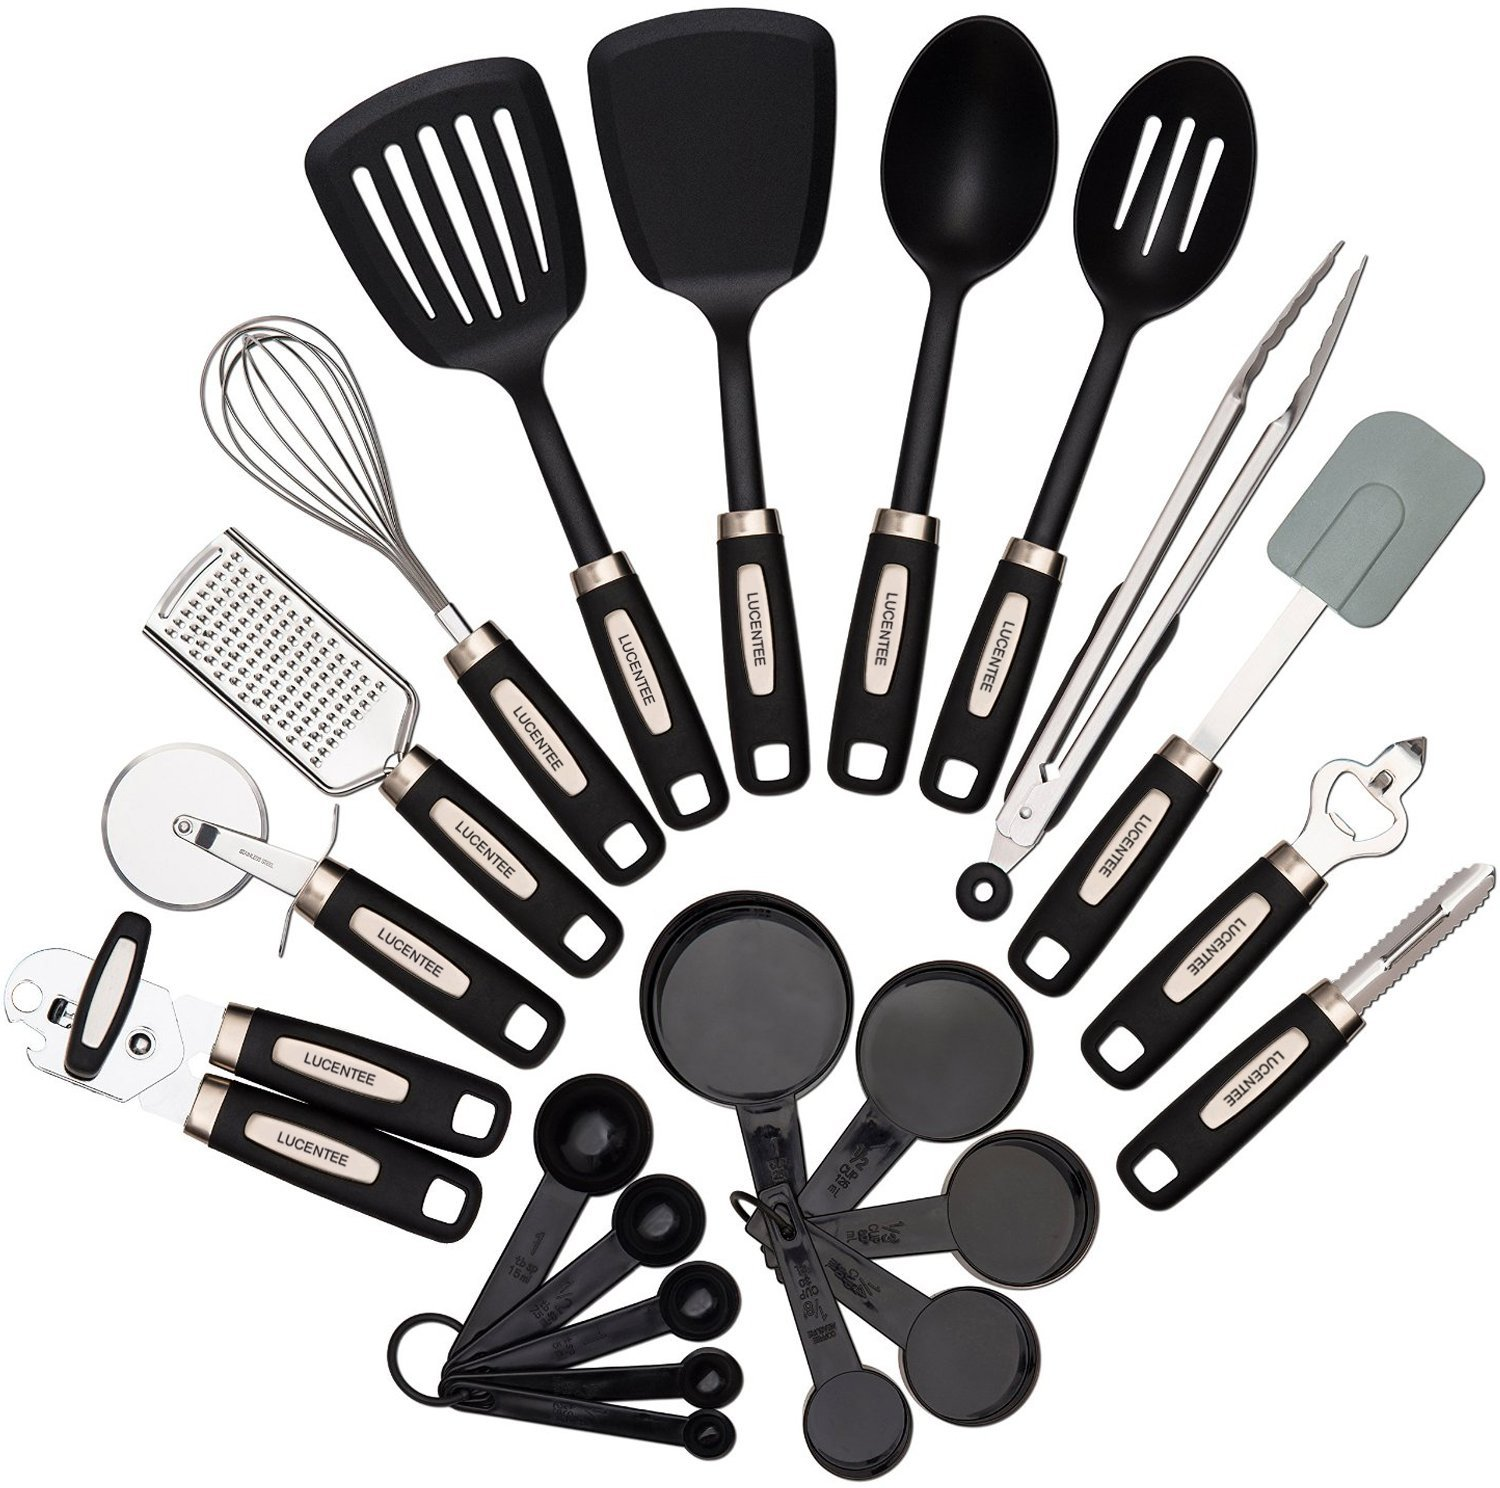 22 Piece Kitchen Utensils Sets Home Cooking Tools Stainless Steel Nylon Gadgets Turners Tongs Spatulas Pizza Cutter Whisk Bottle Opener Grater